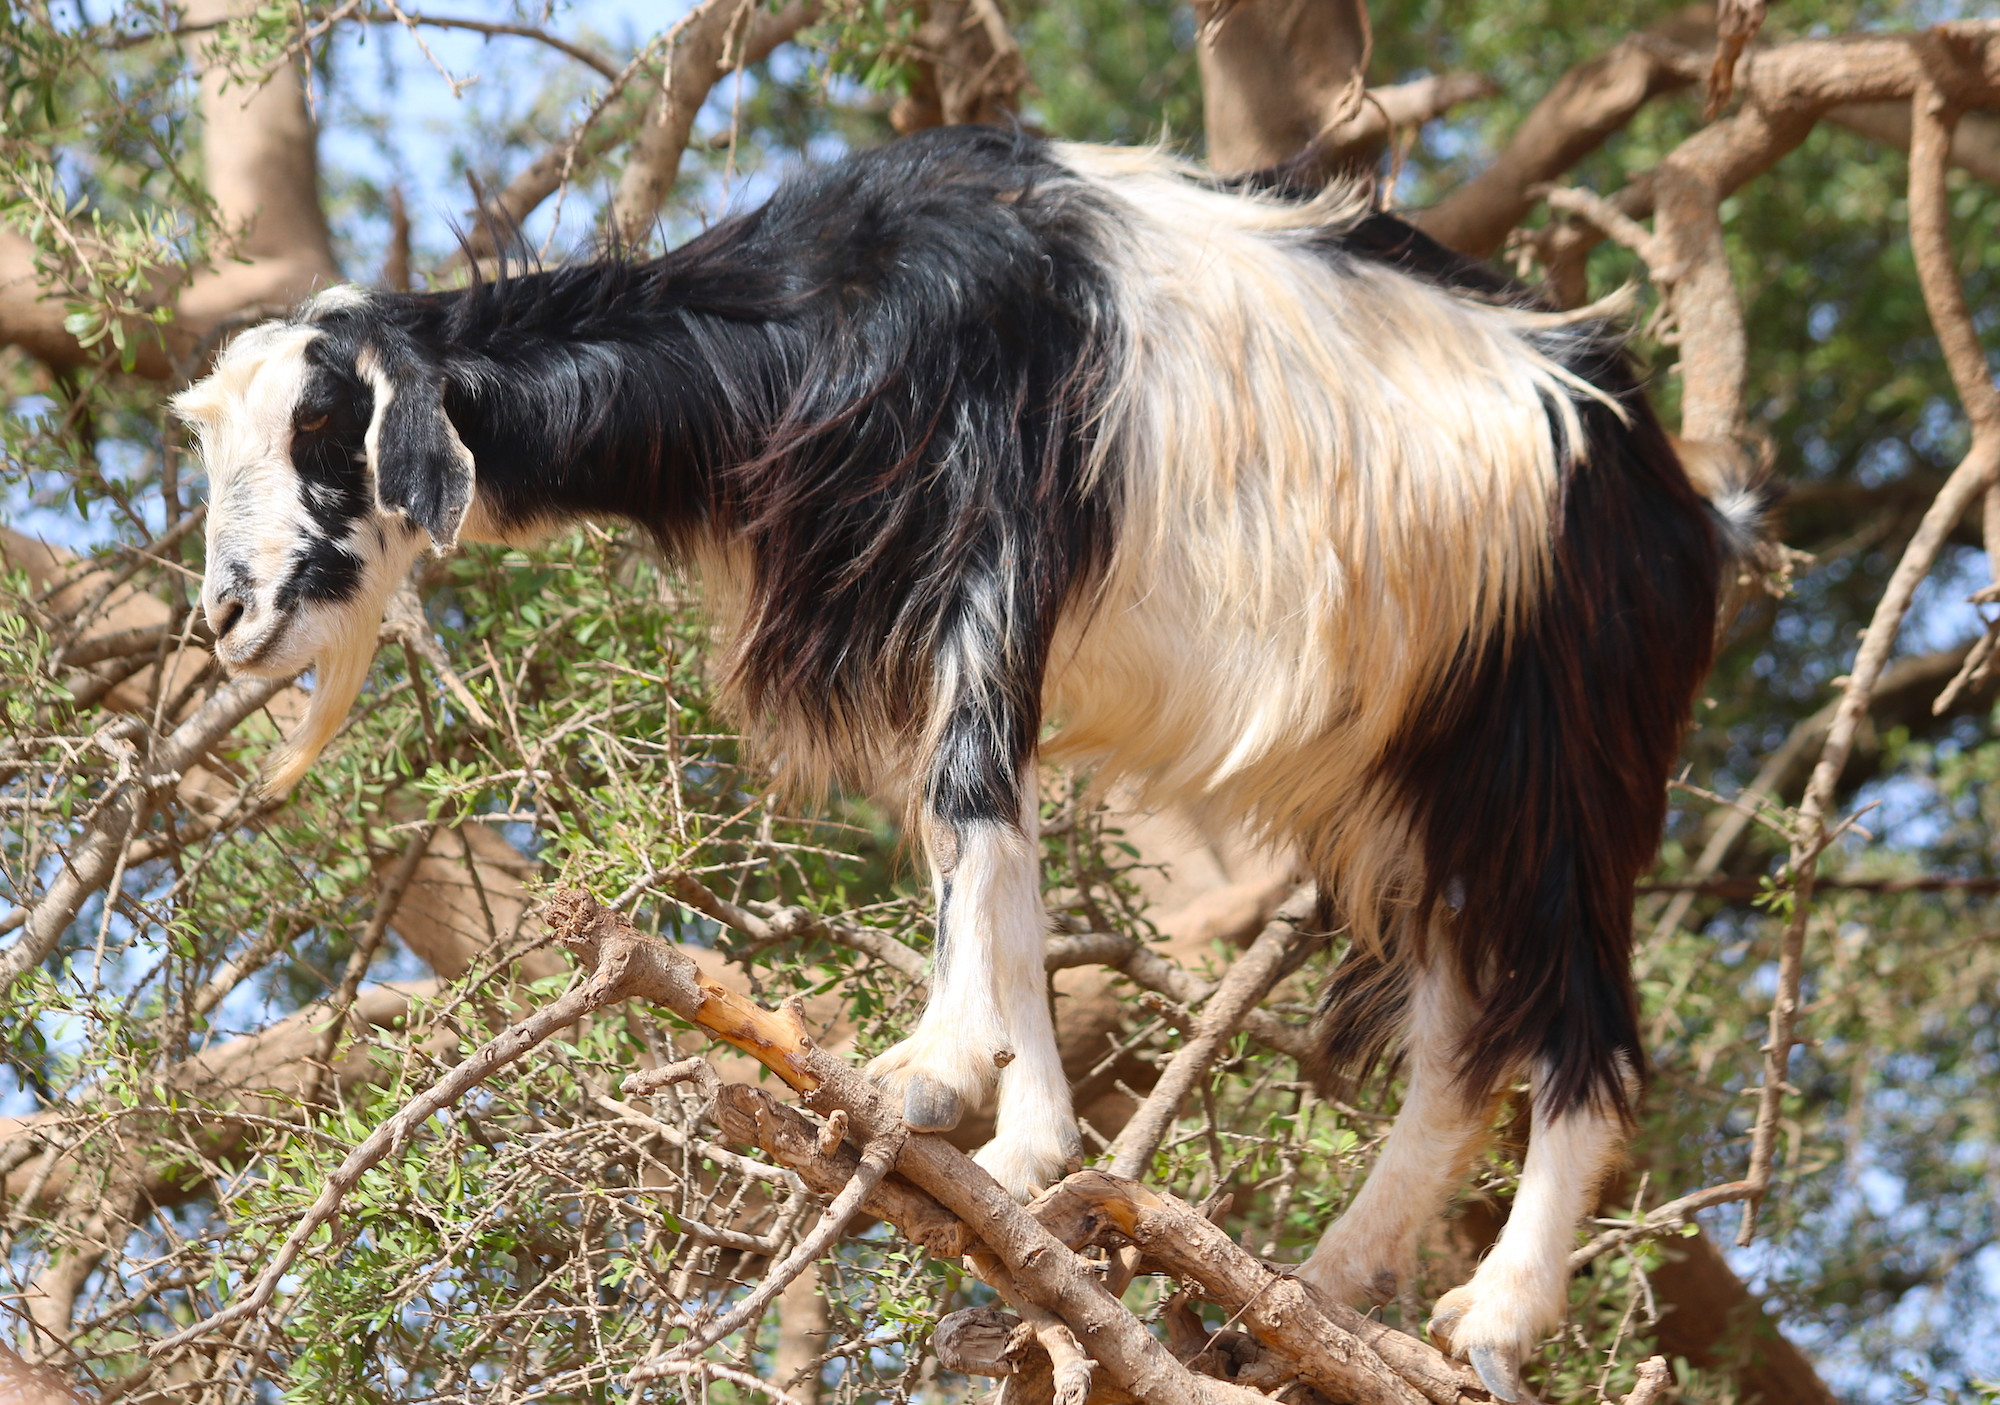 The Moroccan goats